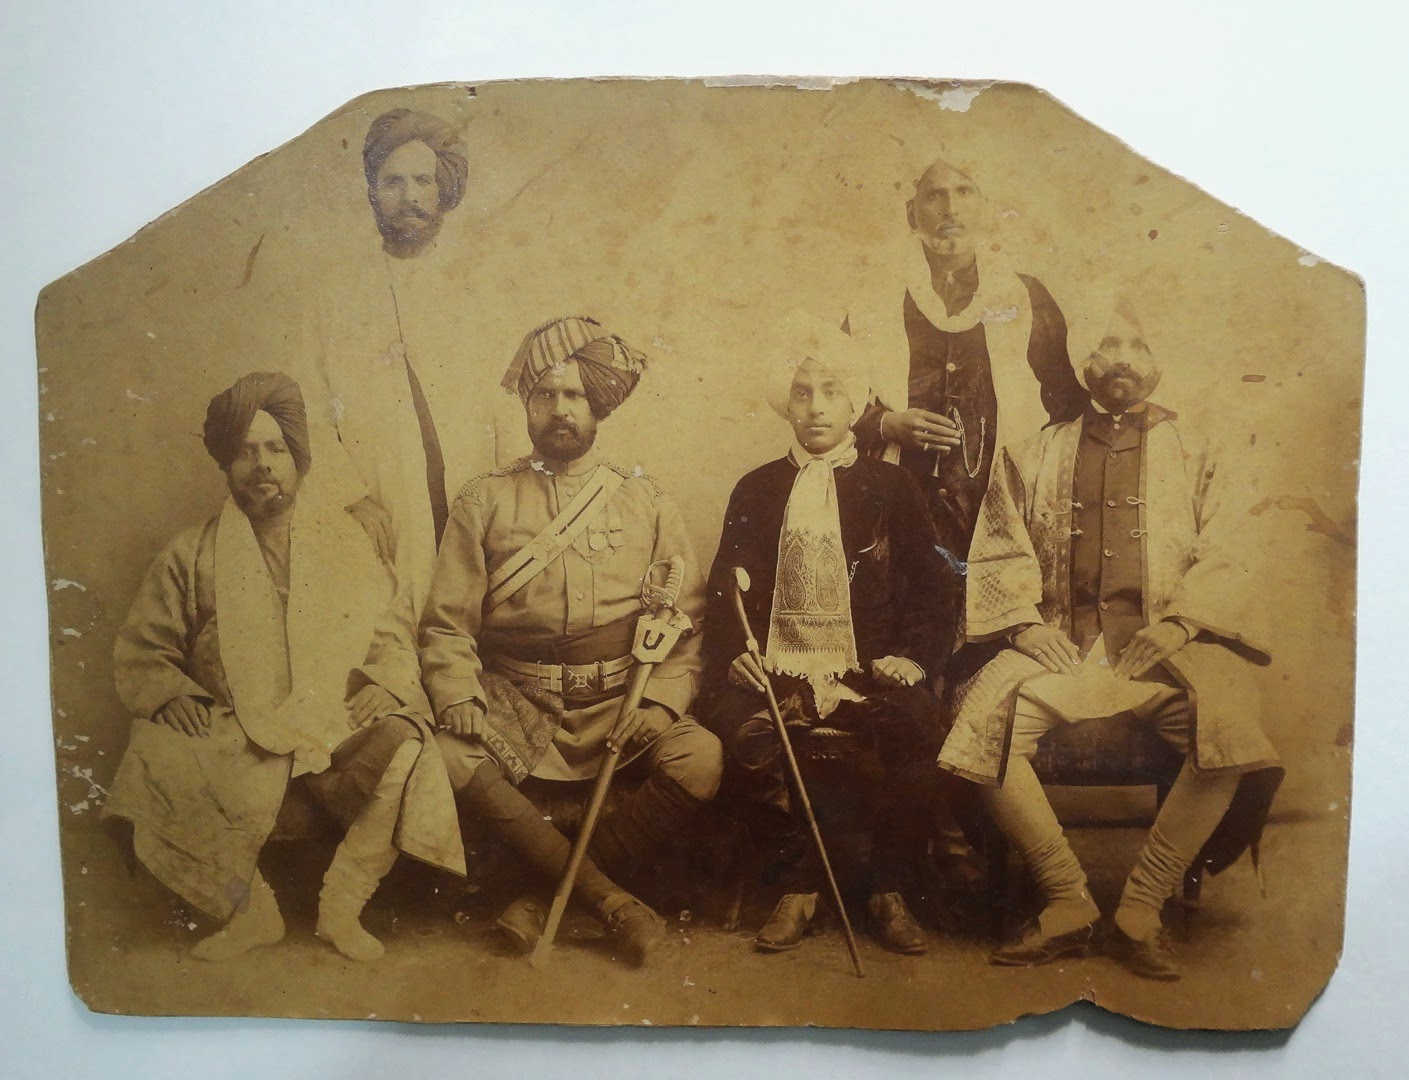 Sikh Prince and Group - Date Unknown